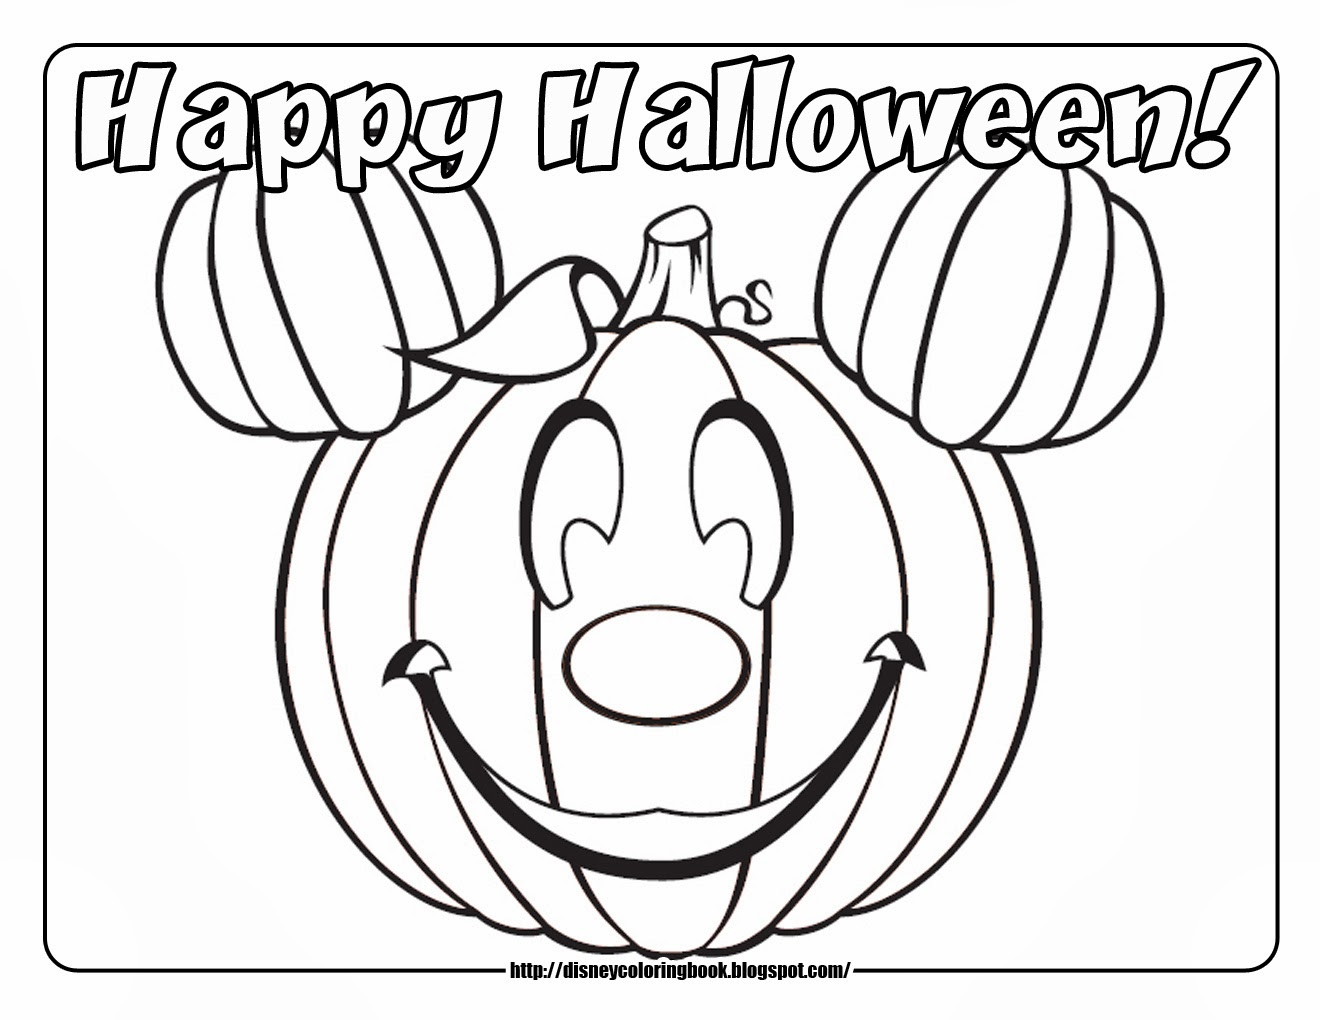 Free coloring pages for halloween - Halloween Coloring Pages Free Printable